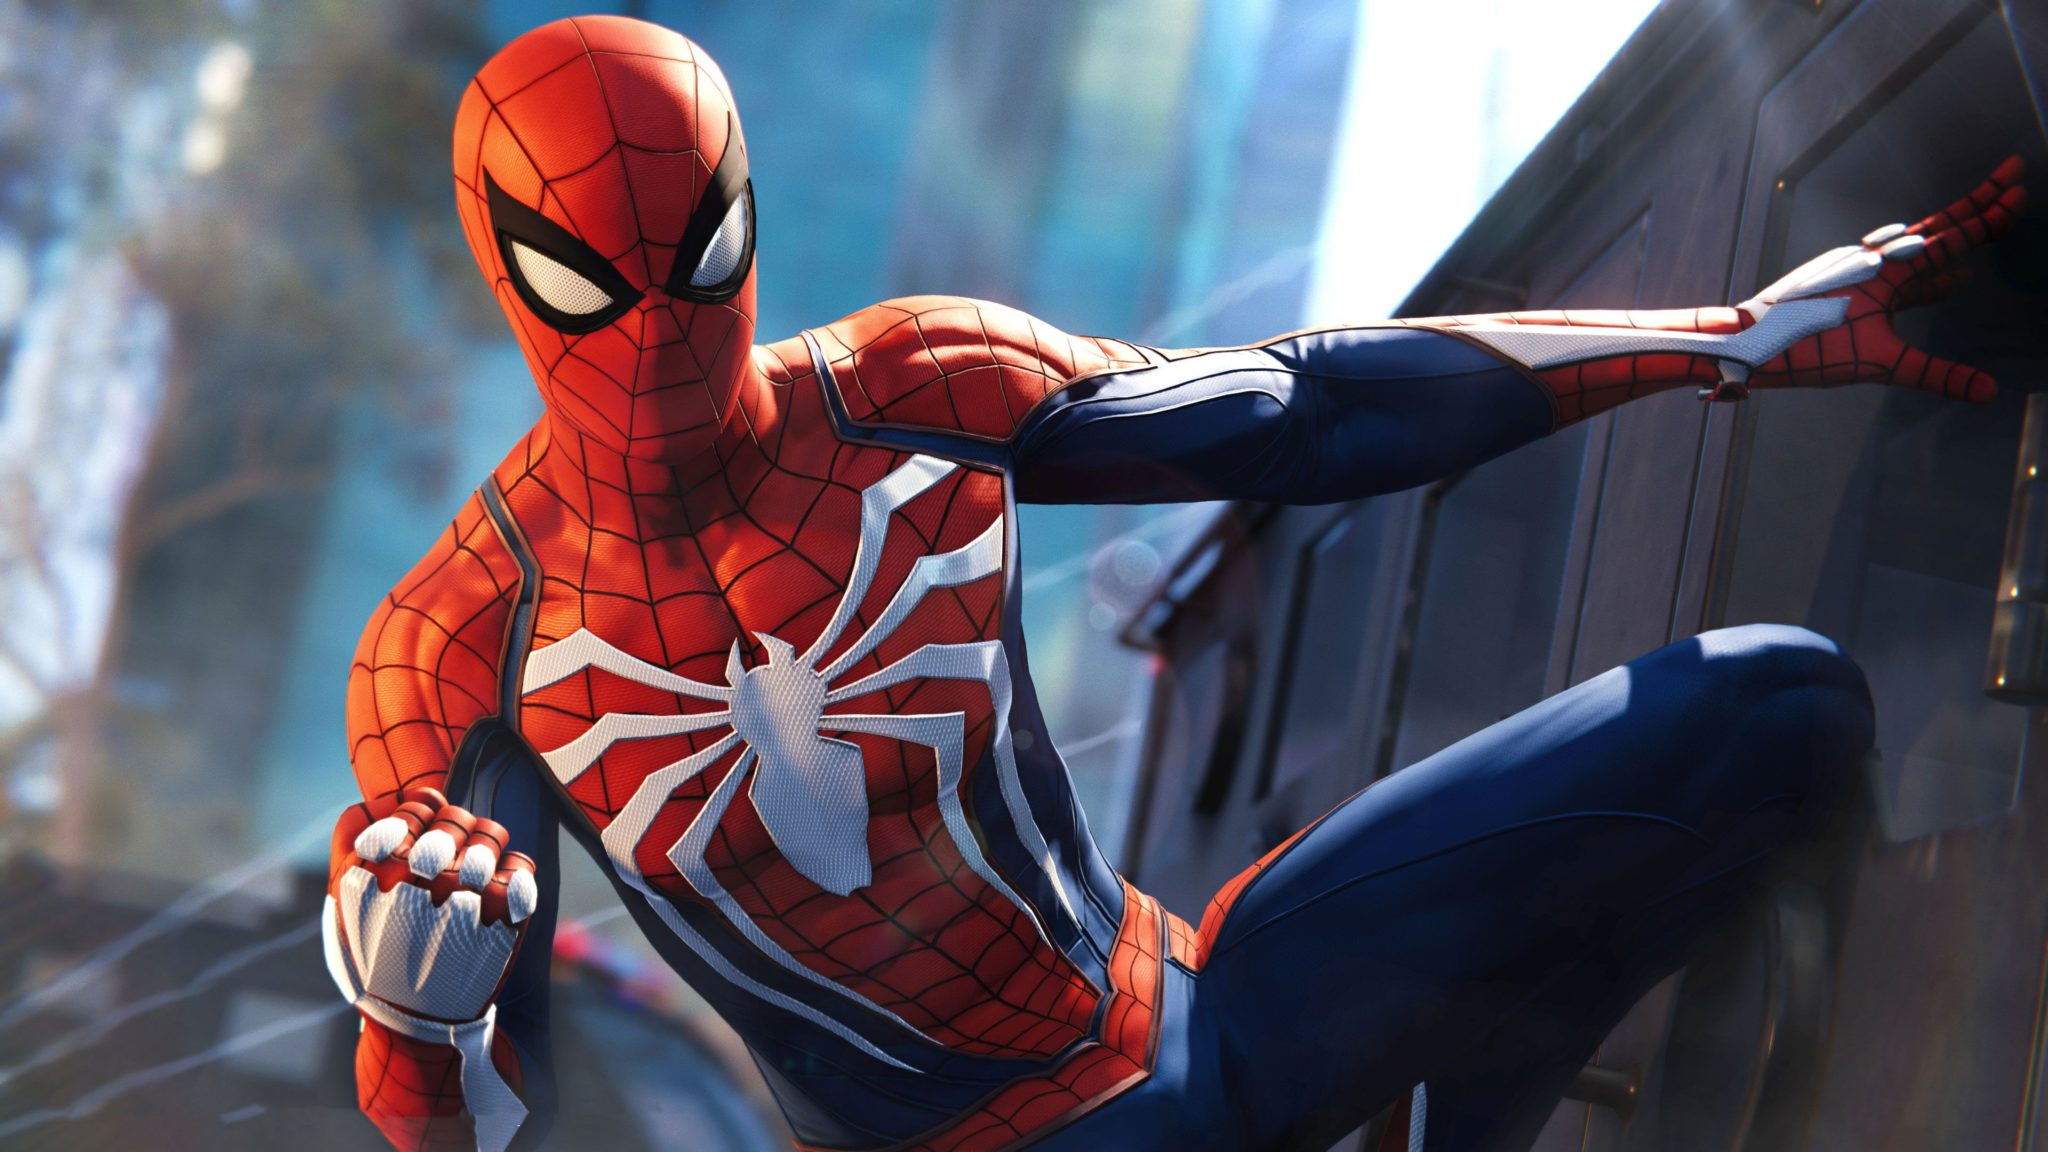 Spider-Man may well be the next Marvel hero to join the Fortnite roster.